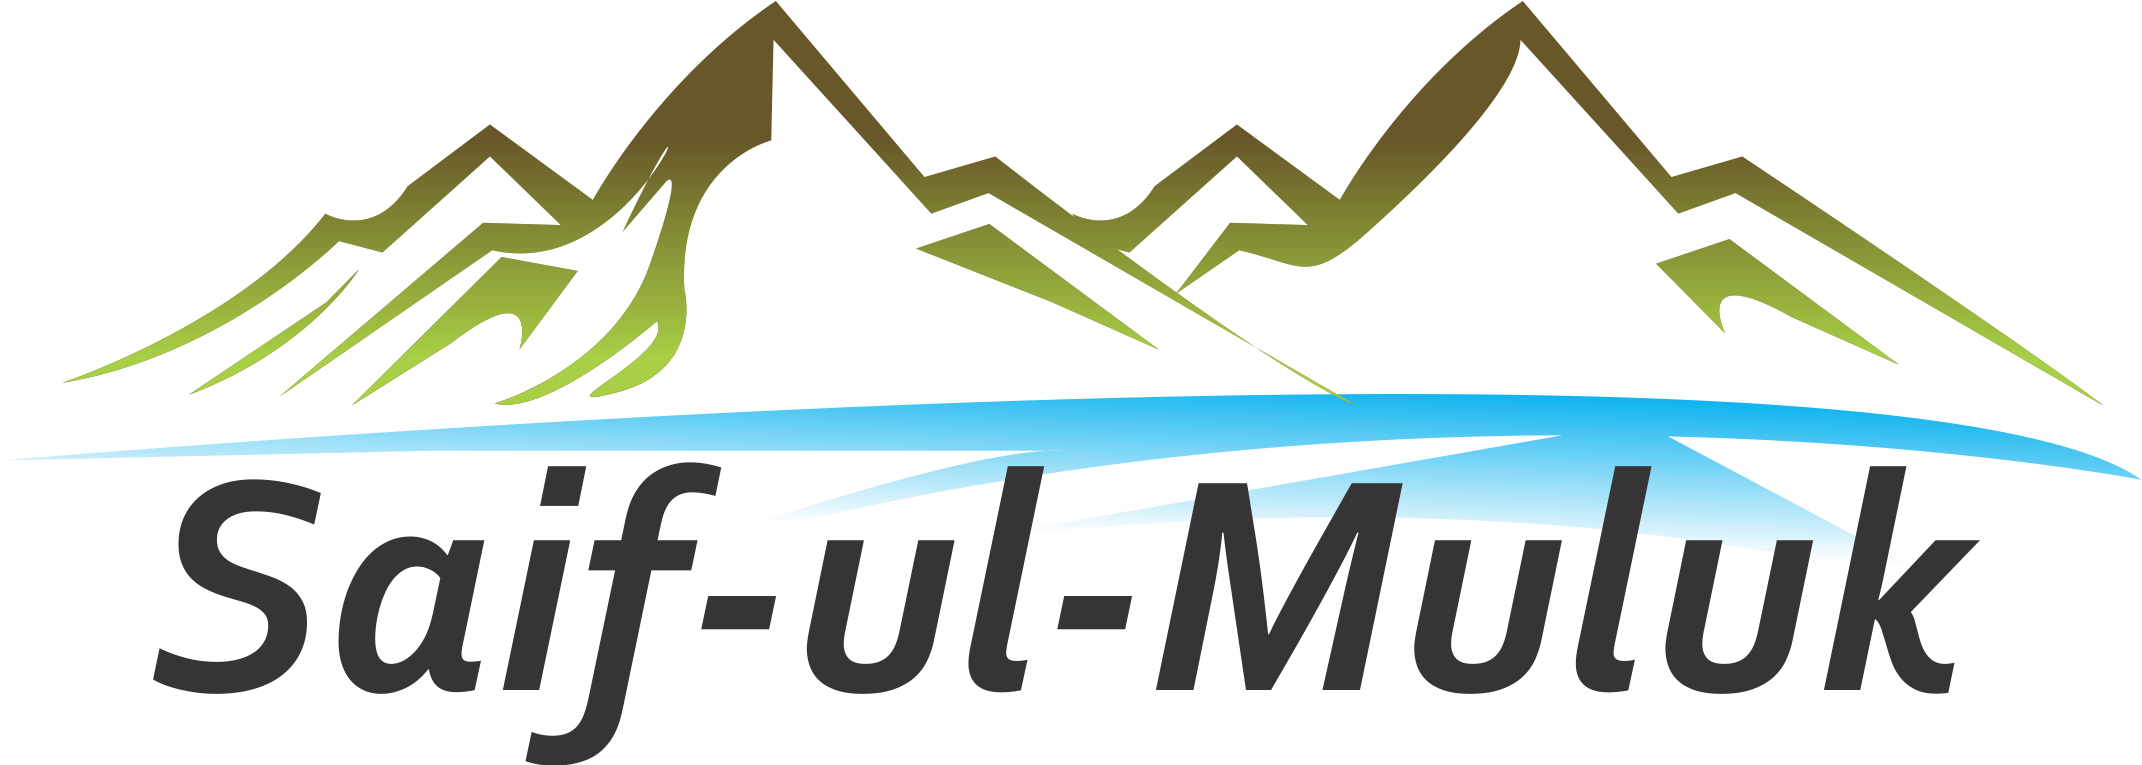 SaifulMuluk Tour and Travel Company | Saif-Ul-Muluk | admin_l9u4kb5j, Author at SaifulMuluk Tour and Travel Company | Saif-Ul-Muluk